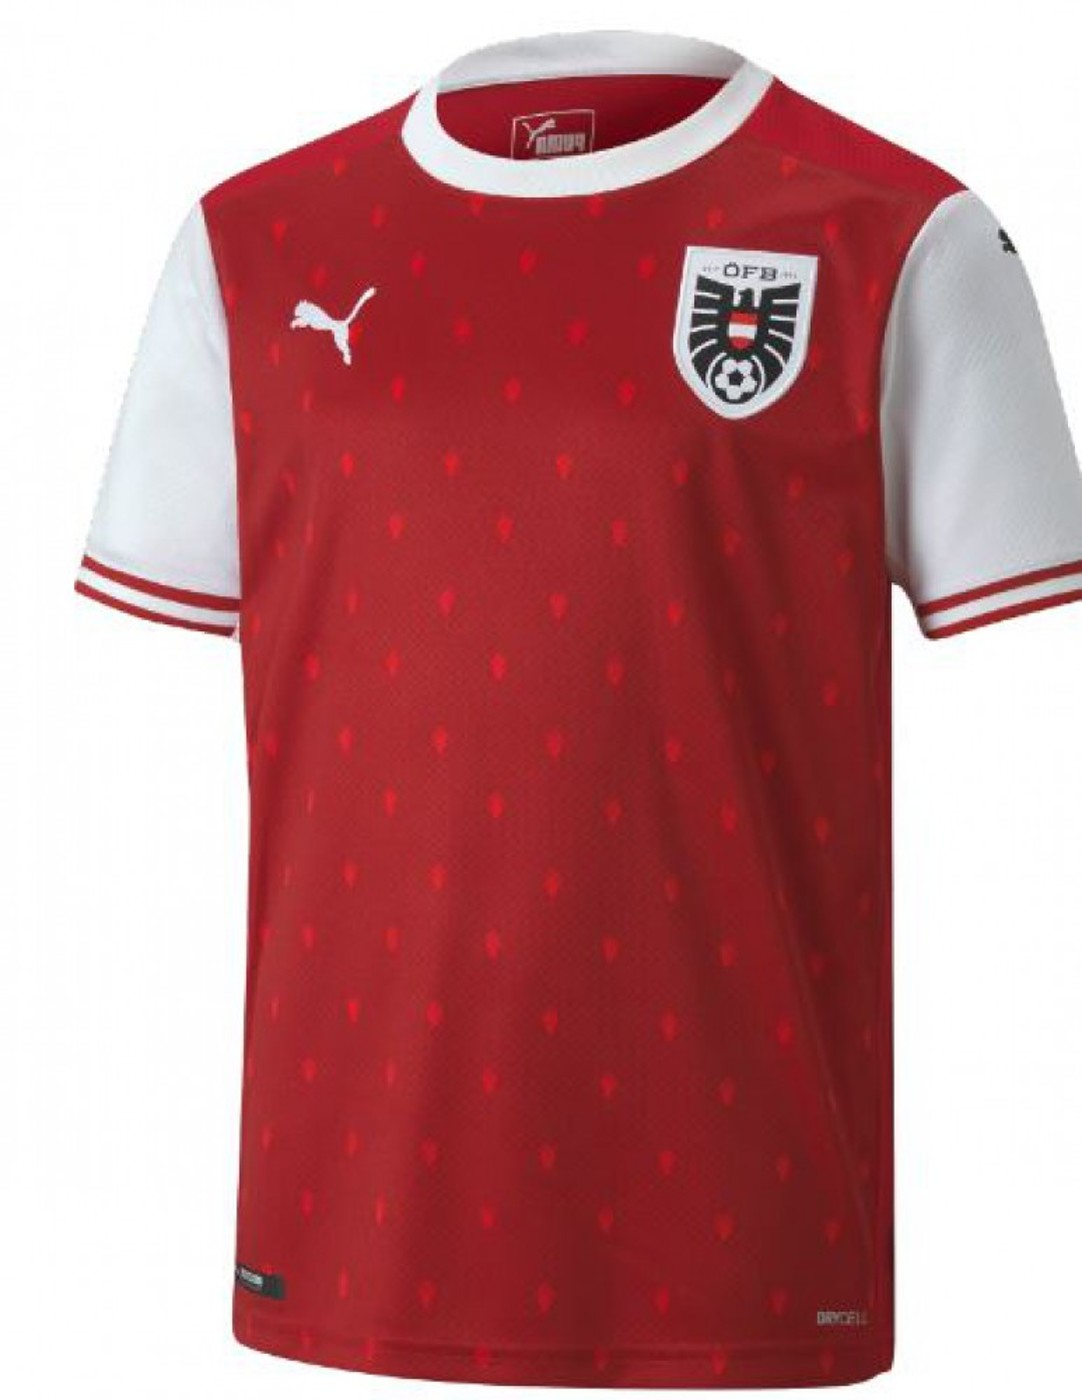 PUMA ÖFB Home Shirt Replica - Kinder